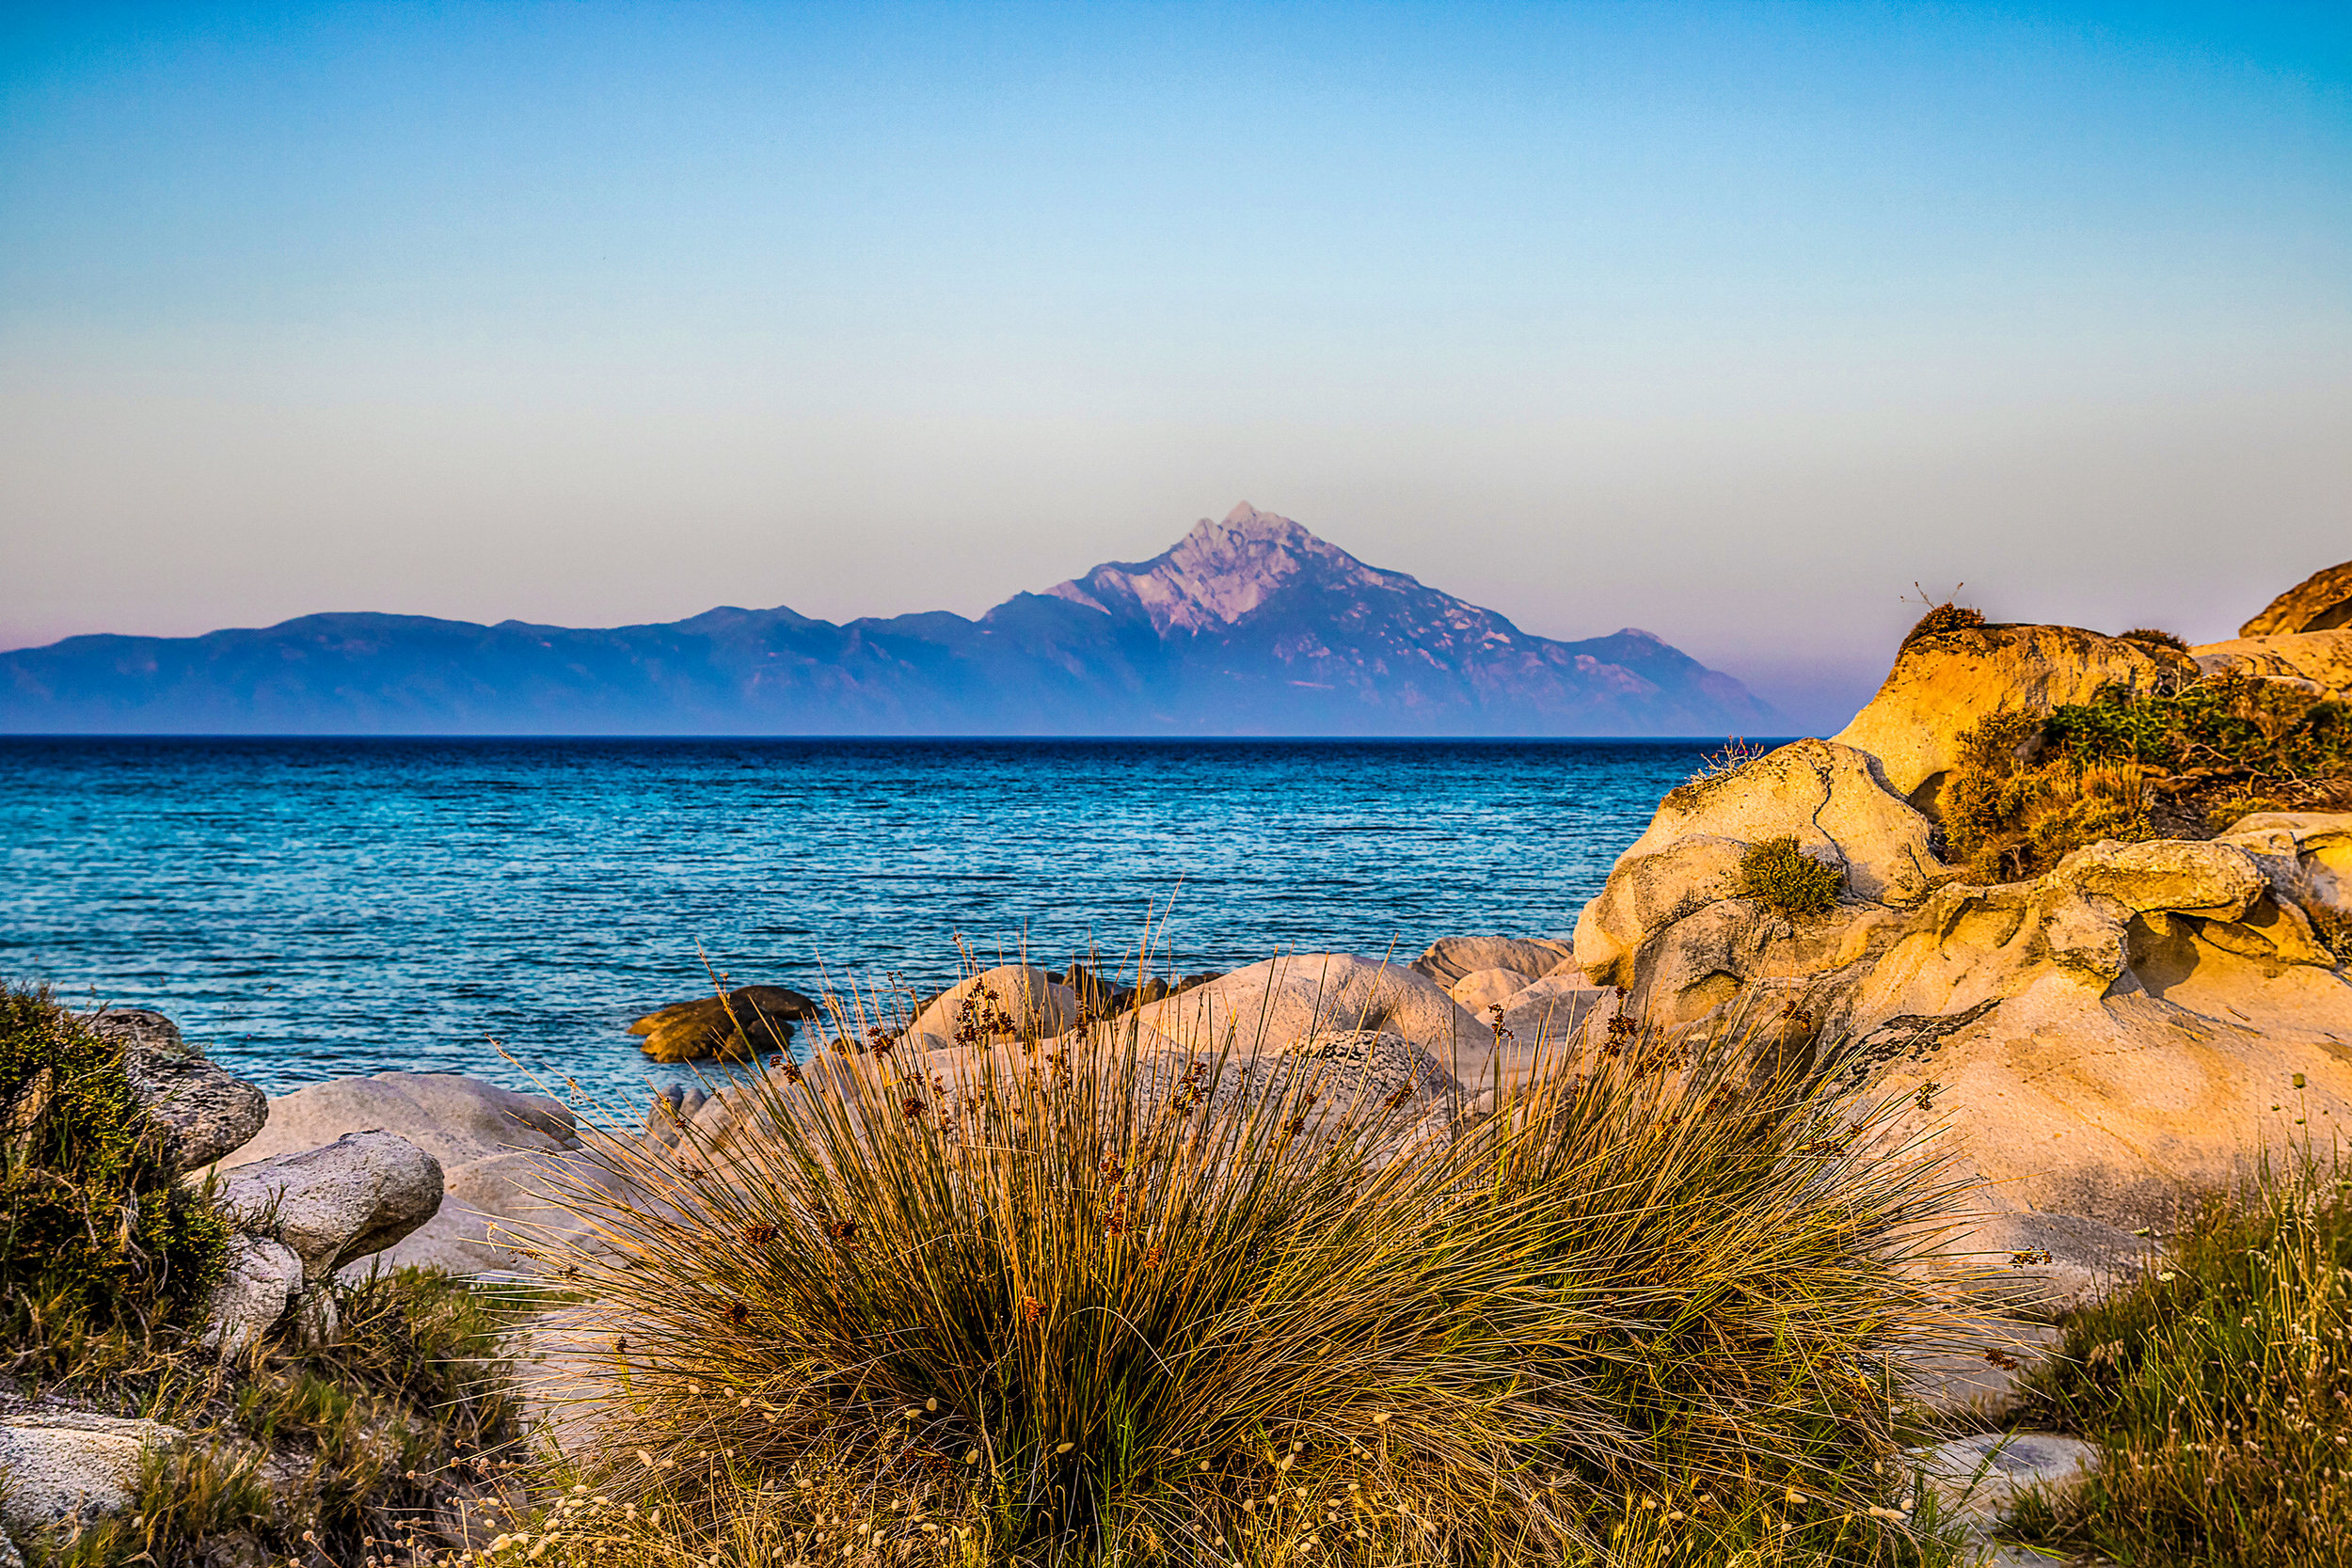 Unspoilt Greece - A week walking on Greece's picturesque peninsula of SithoniaFrom £1095